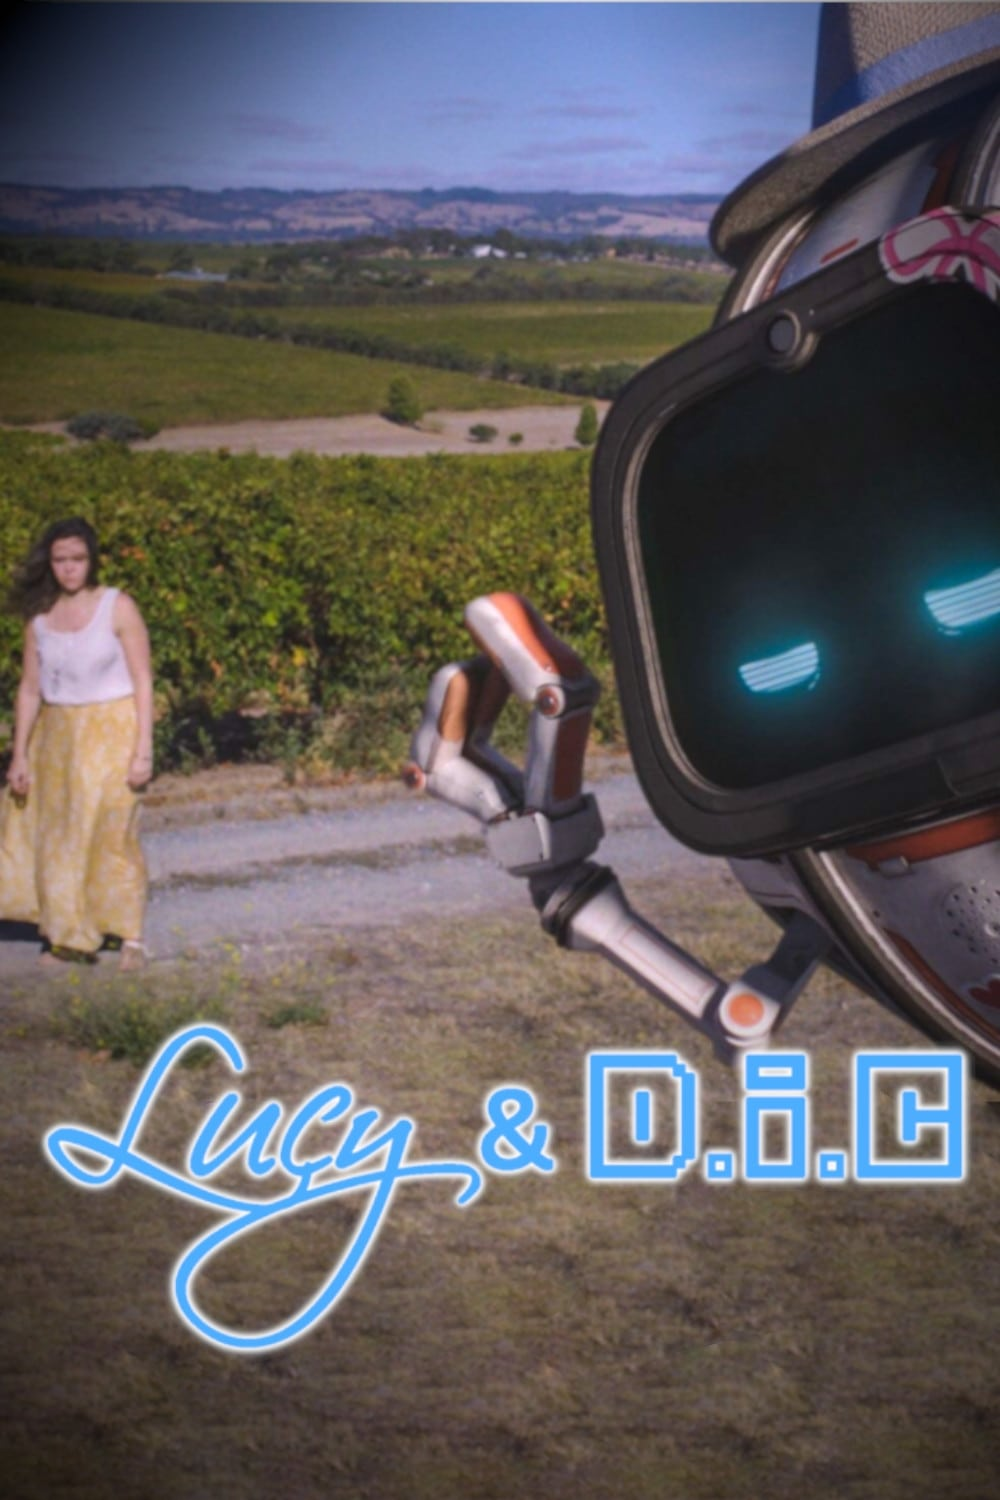 Lucy & D.i.C. (2017)